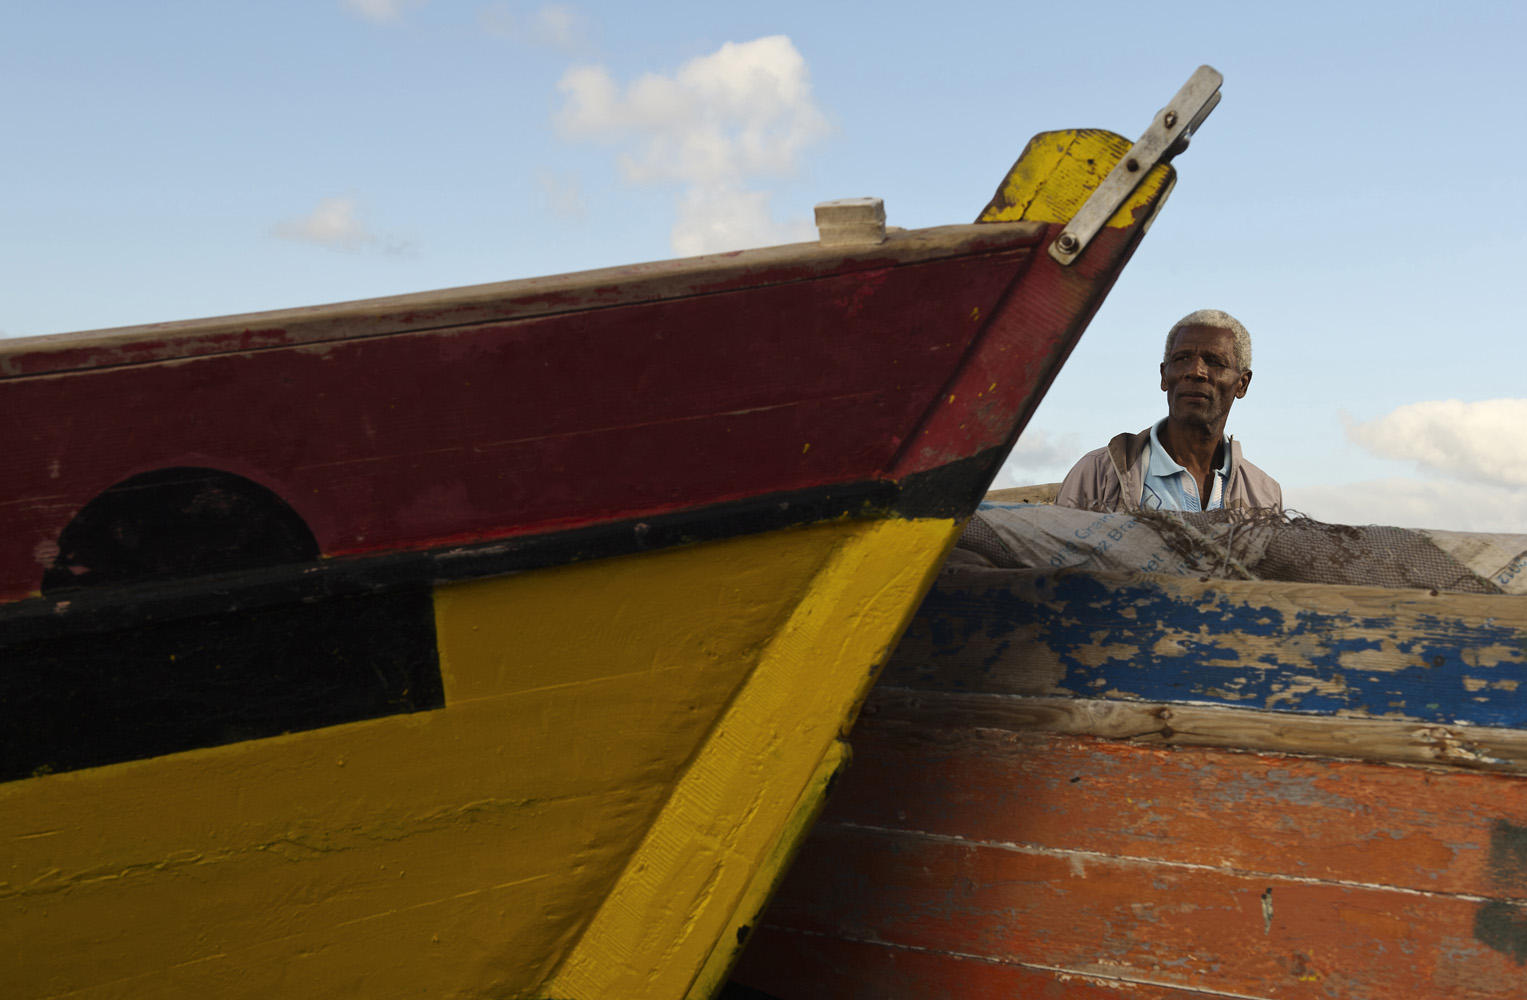 Salamansa, Cape Verde. Armando Louis Fortes, Fishermen from Salamansa, Sao Vicente Fishermen Association, explains the decrease of fish stock in Cape Verde is due to the overfishing by the EU-fleet in West Africa region.